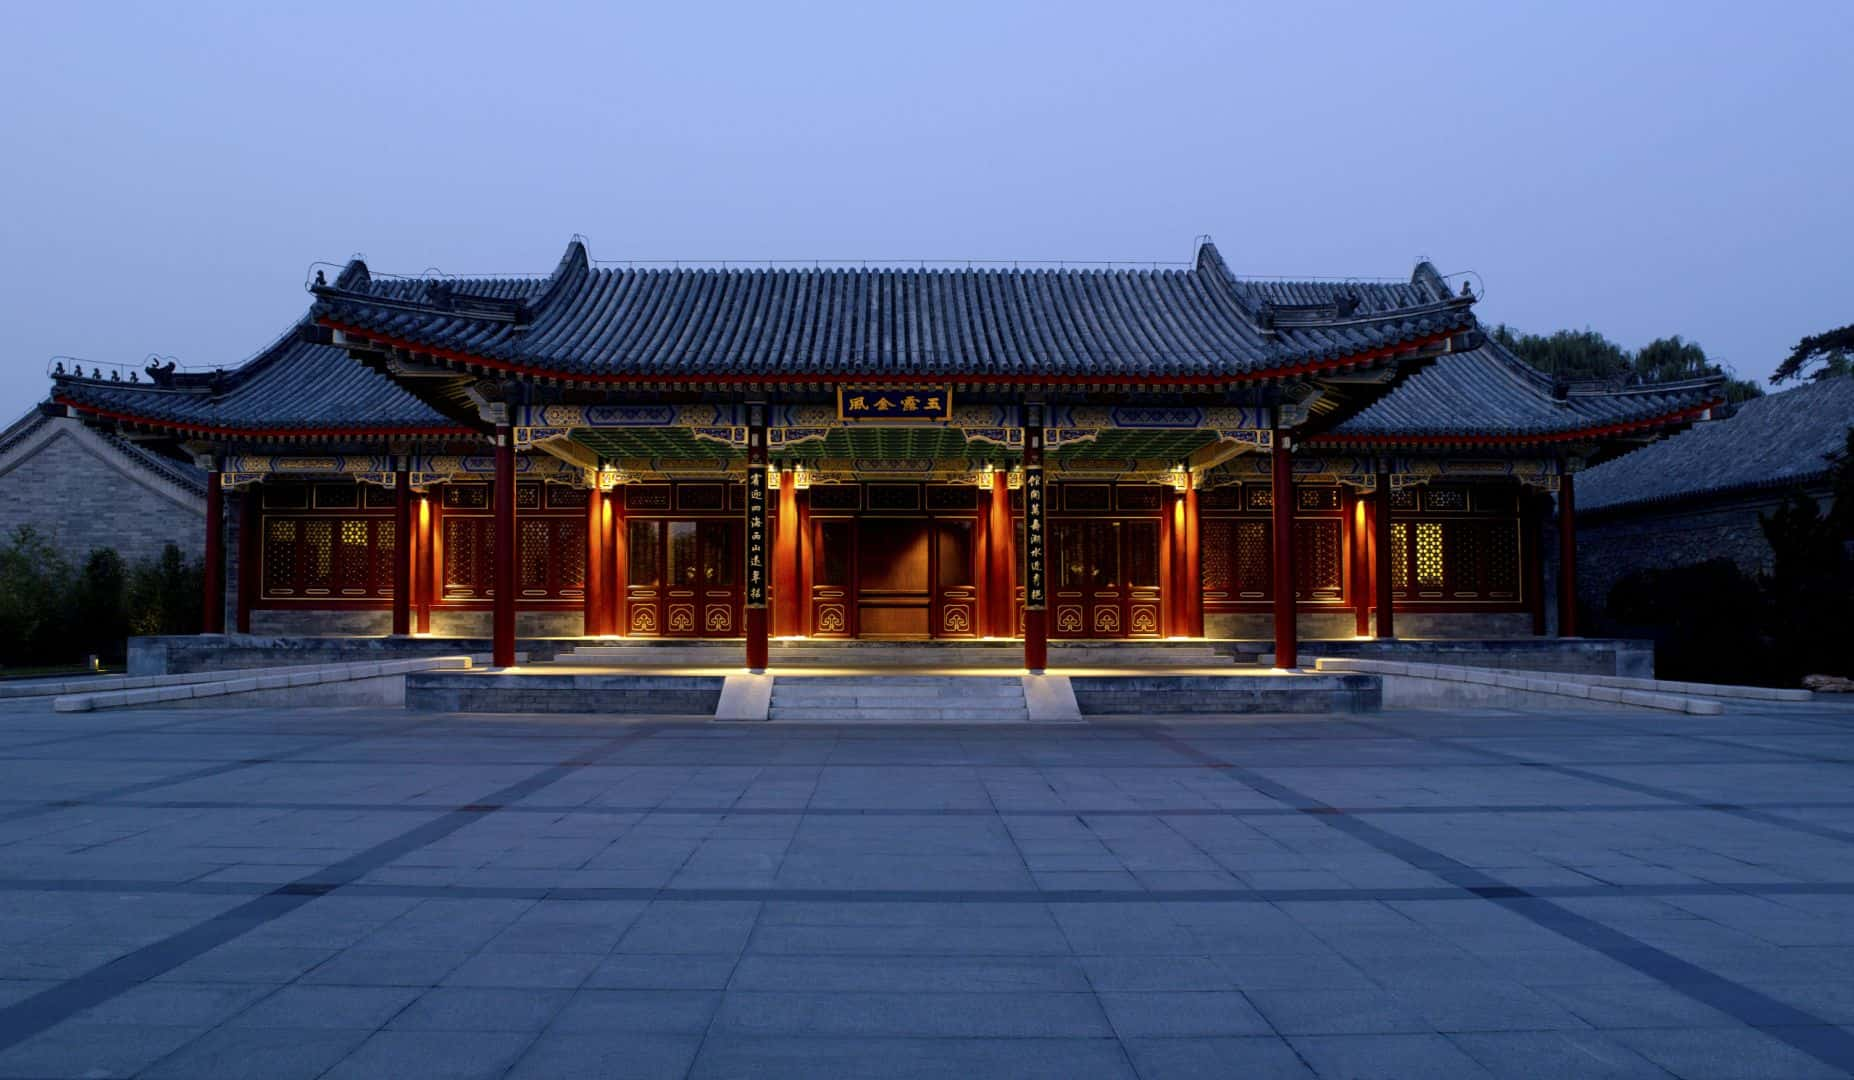 Just steps from the East gate of the Summer Palace grounds. The Aman at Summer Palace is housed in a series of pavilions with peaceful internal courtyards embracing traditional Chinese architecture.